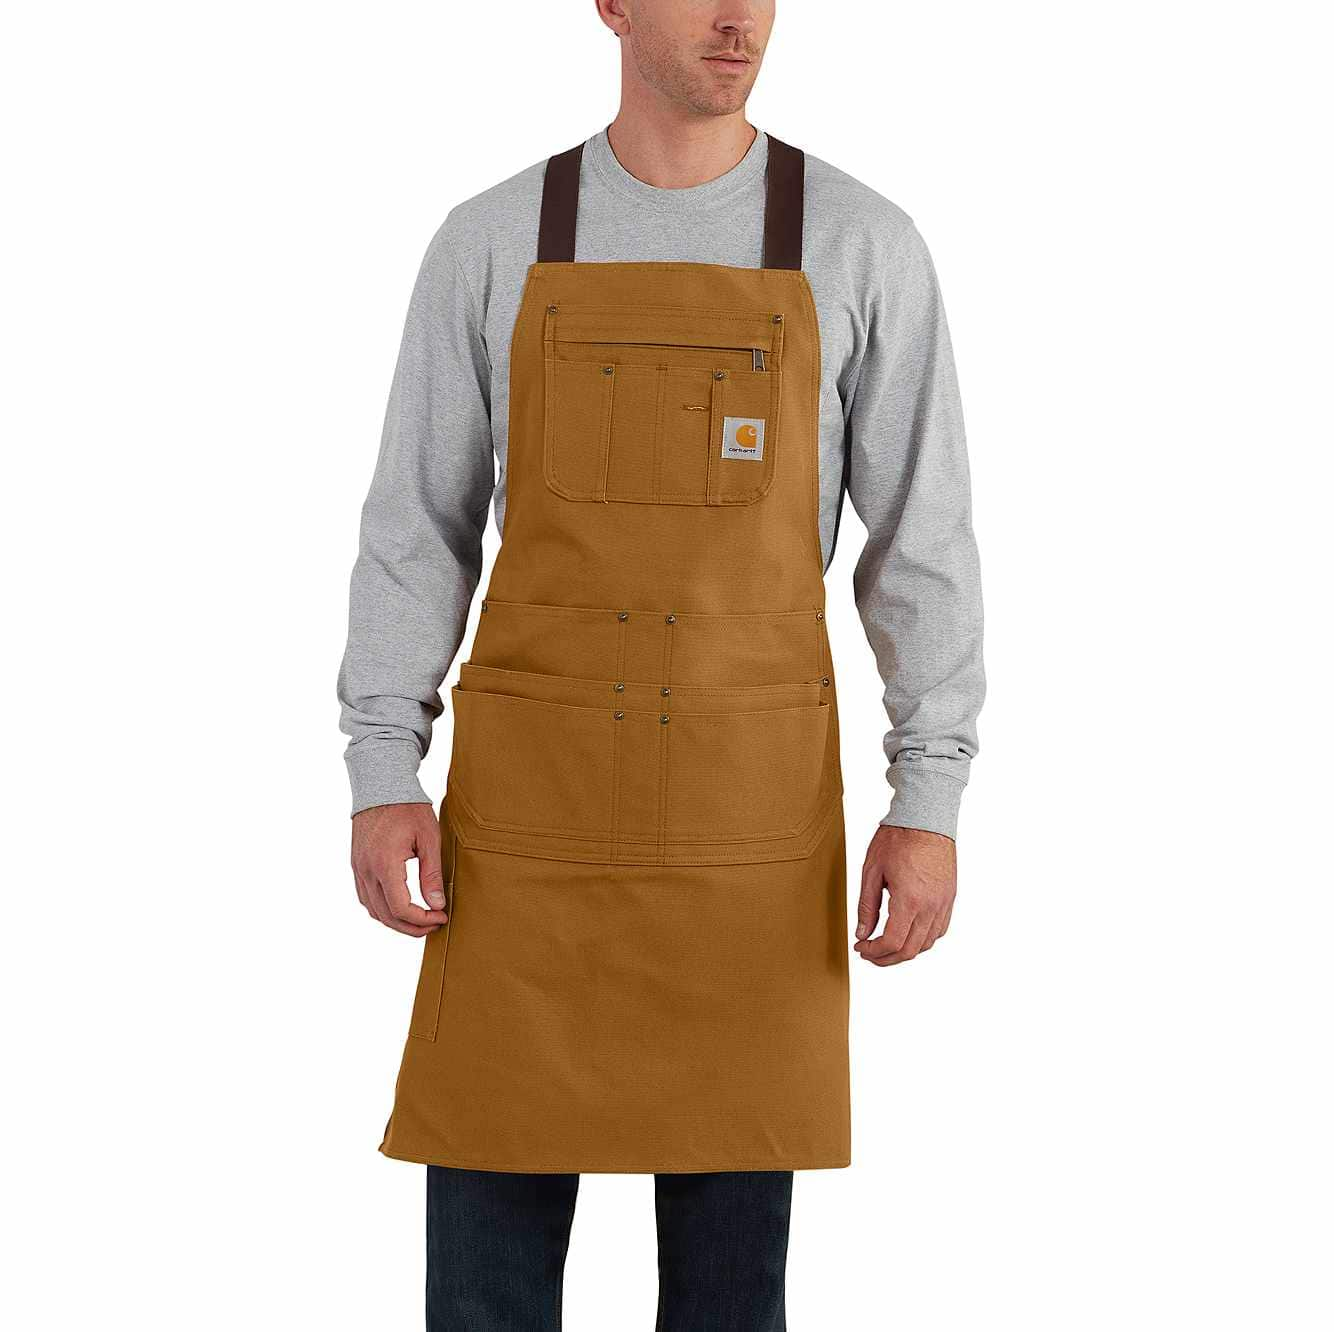 Picture of Apron in Carhartt Brown